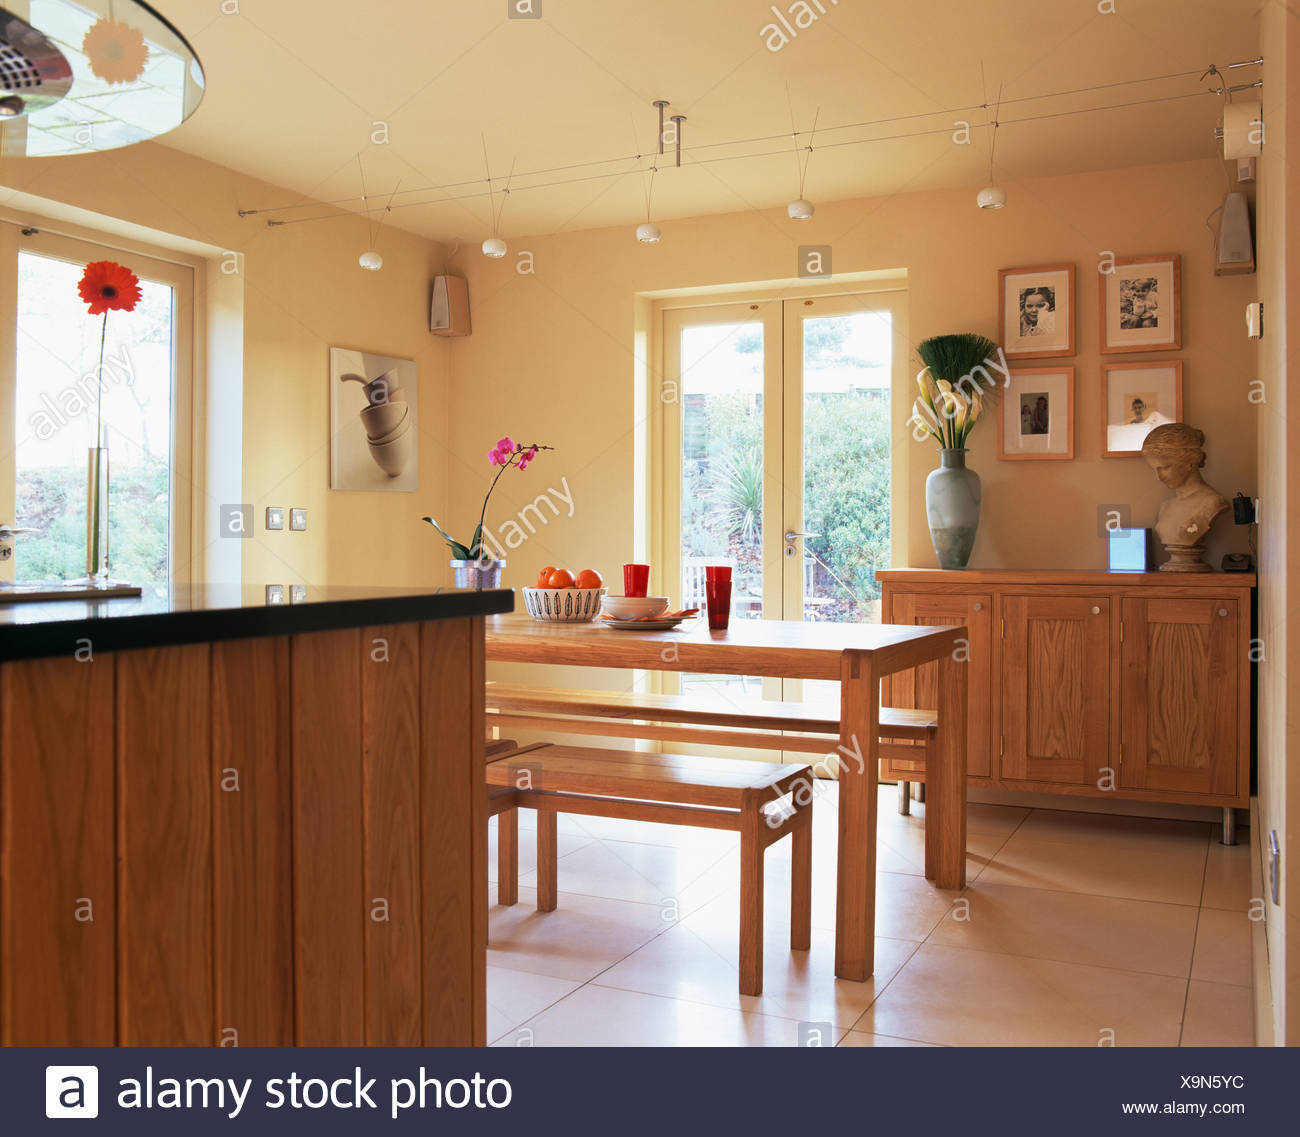 Simple Wood Table And Benches In Modern Kitchen Dining Room With Glass Patio Doors